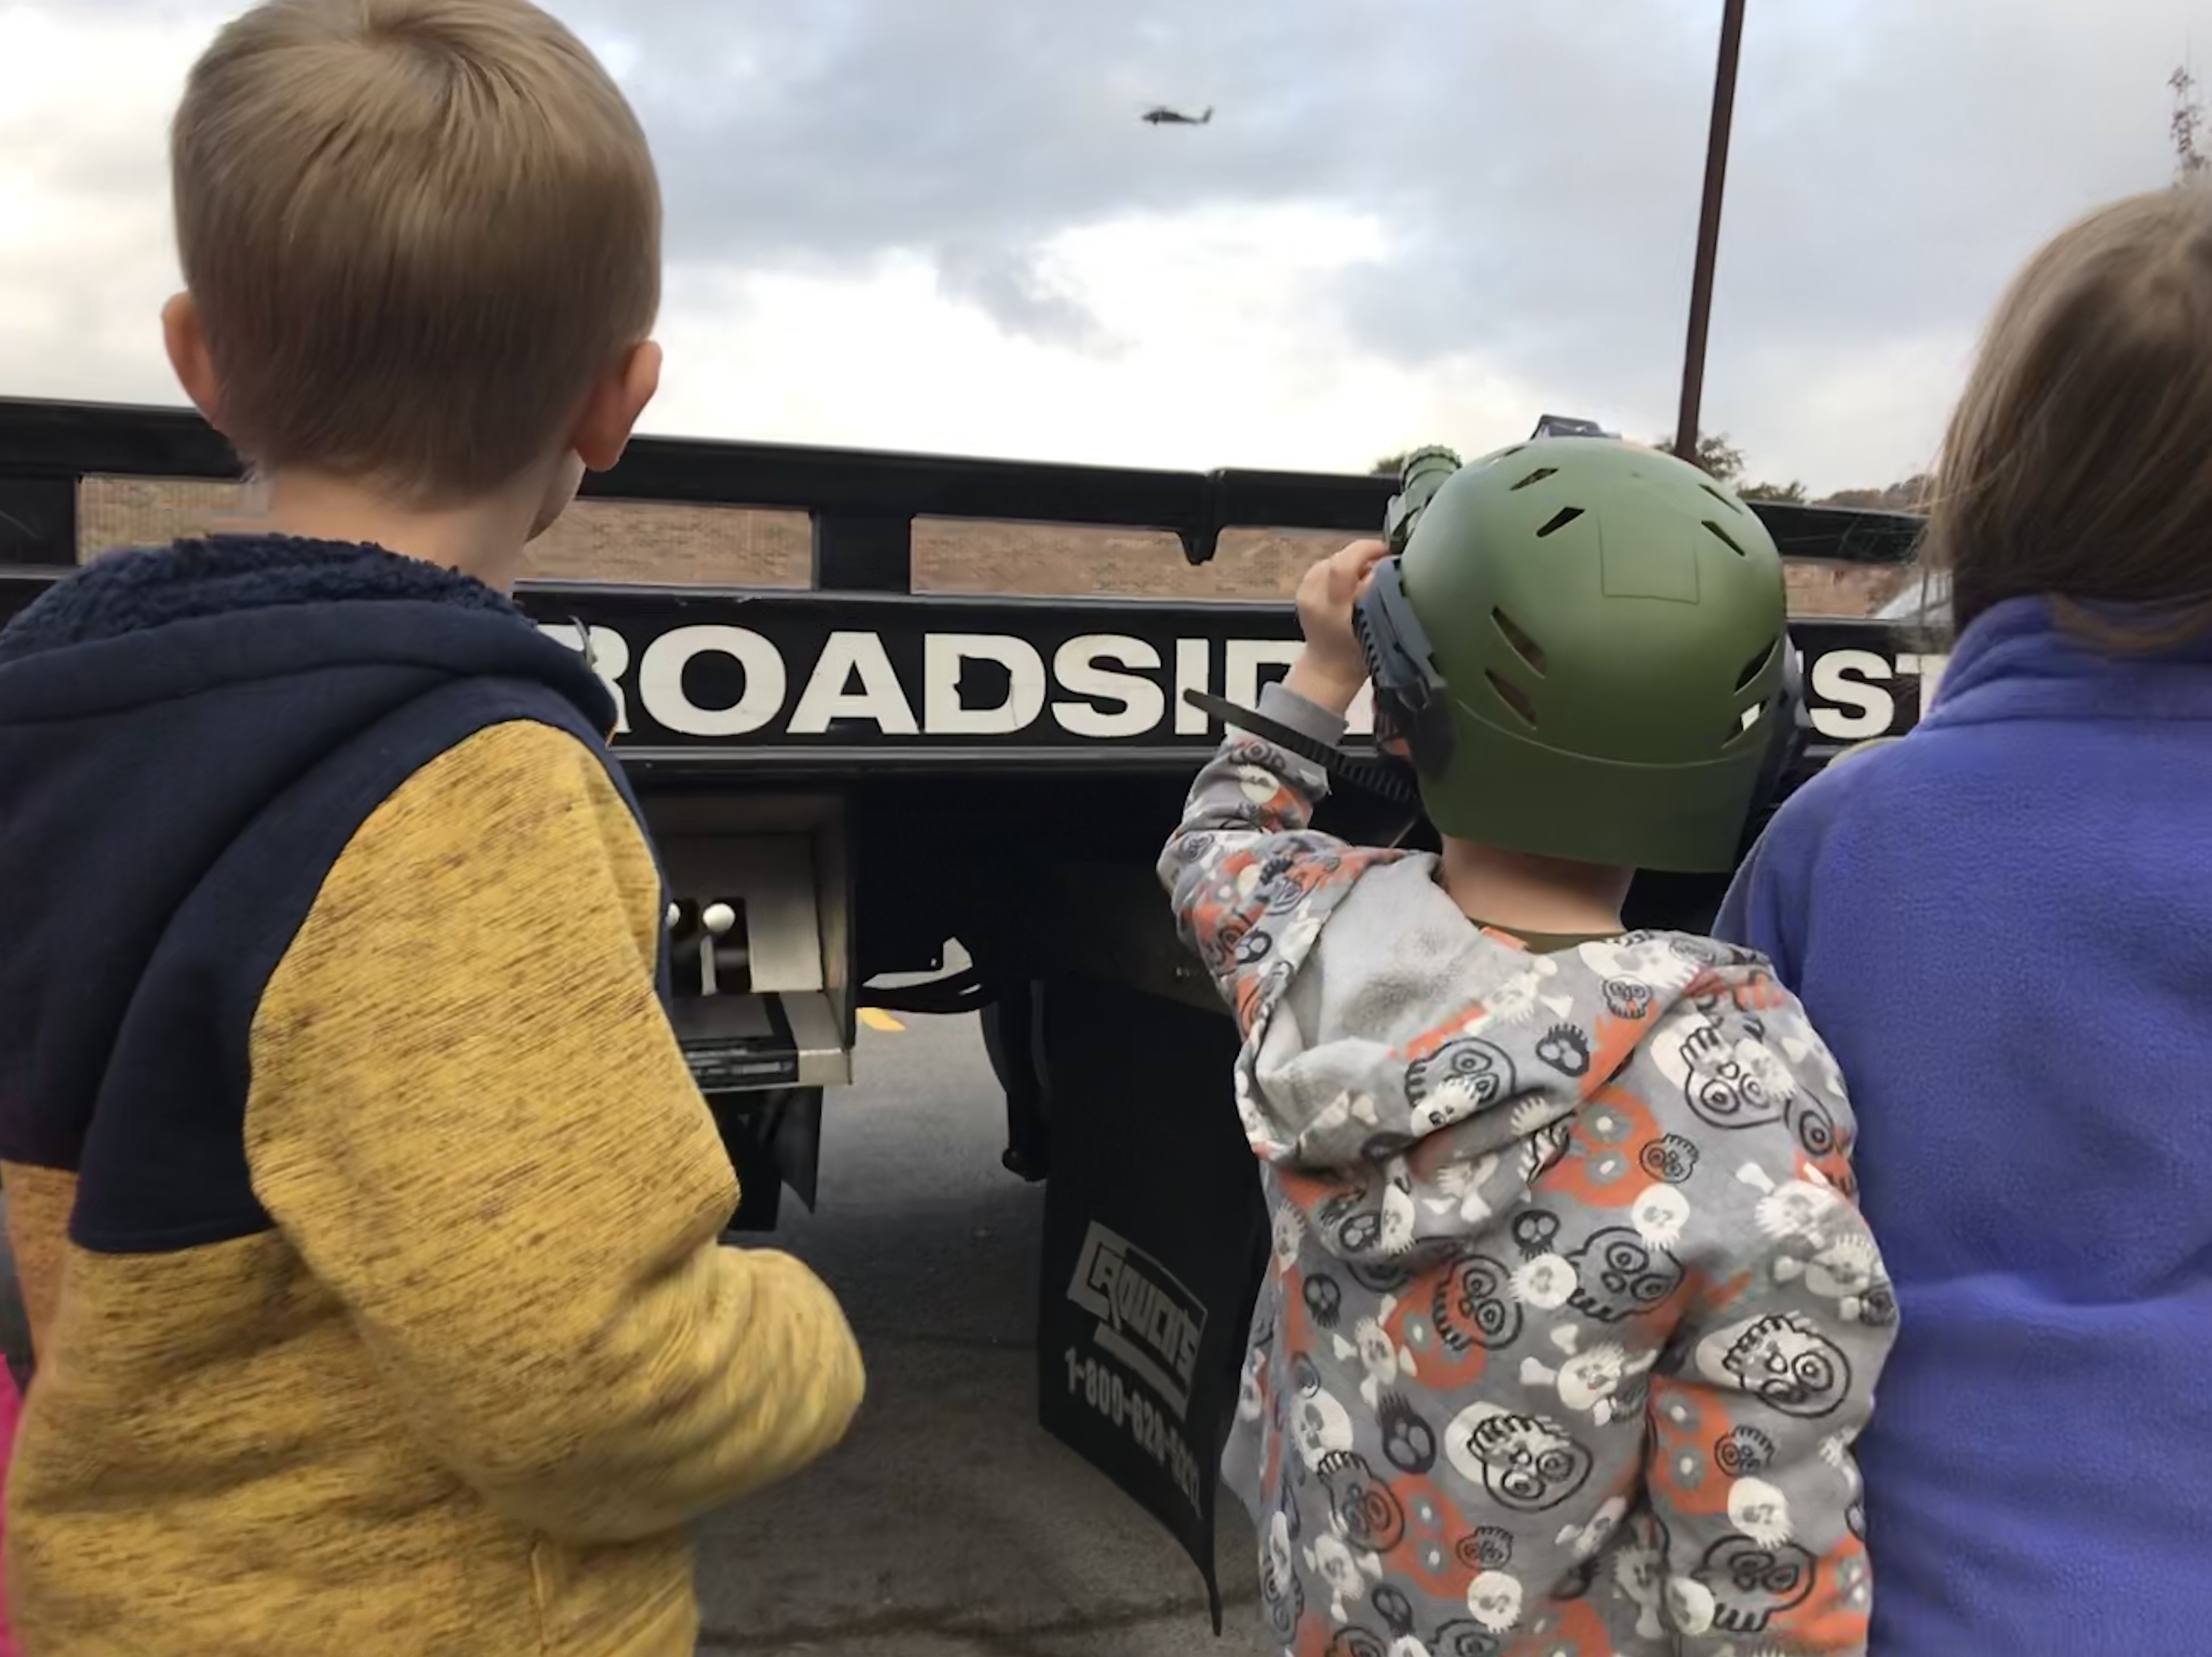 A student at East Knox County Elementary School uses a toy scope to watch as a National Guard helicopter lands at the school for Career Day.